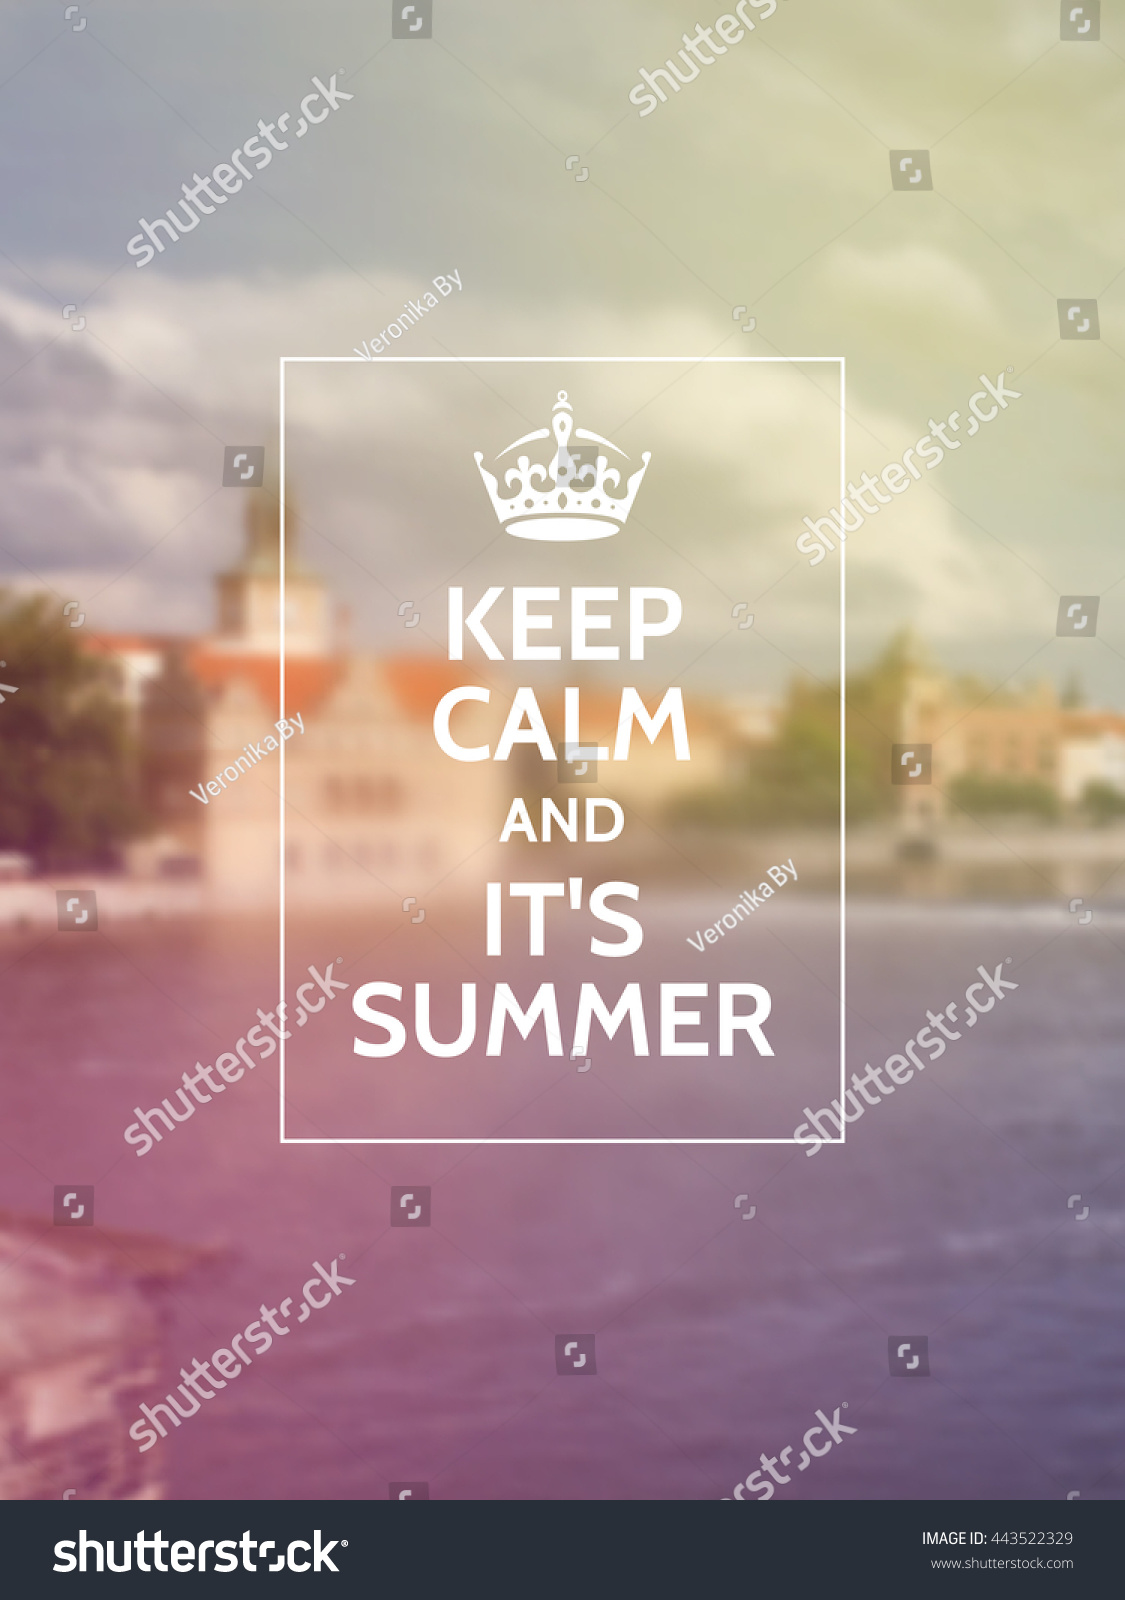 Keep Calm And Itu0027s Summer. Traveling Motivational Typography Poster On  Blurry Photo Background. Summer